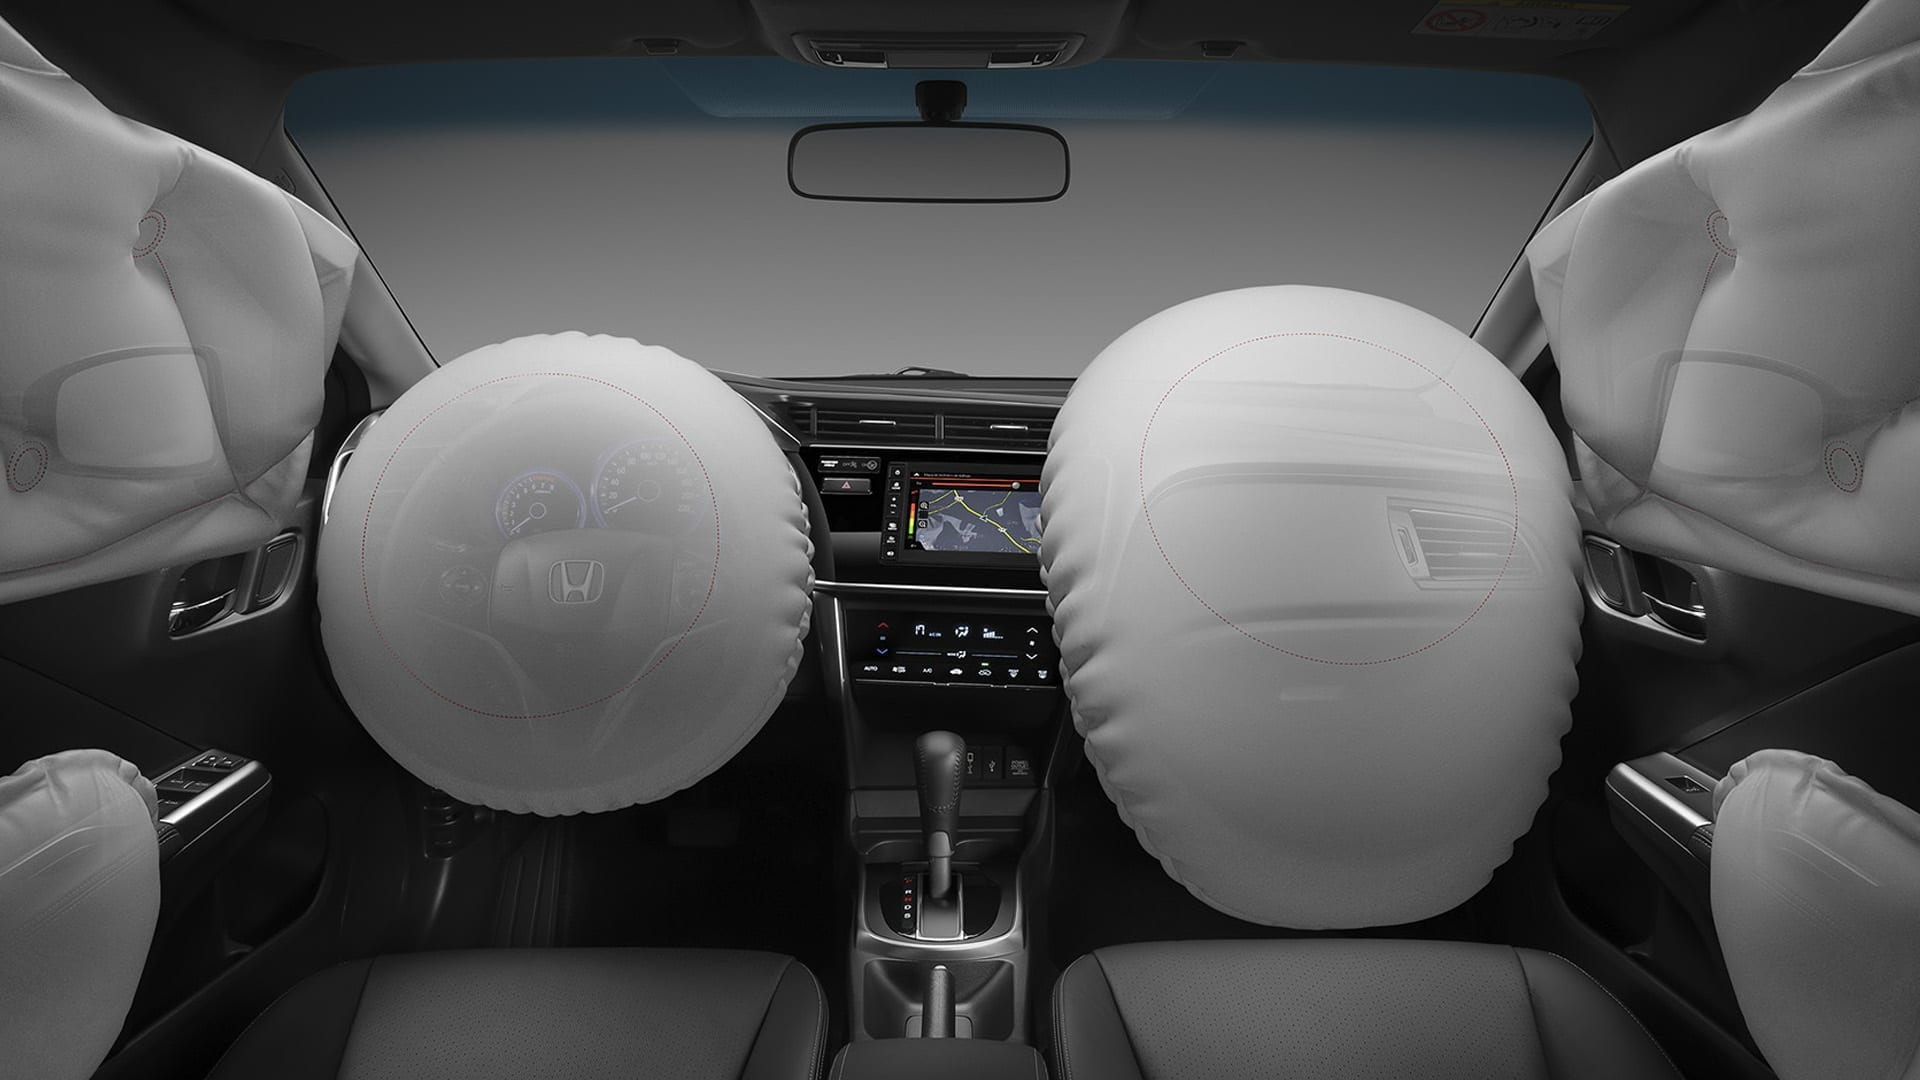 City - 6 Airbags: frontais, laterais e de cortina